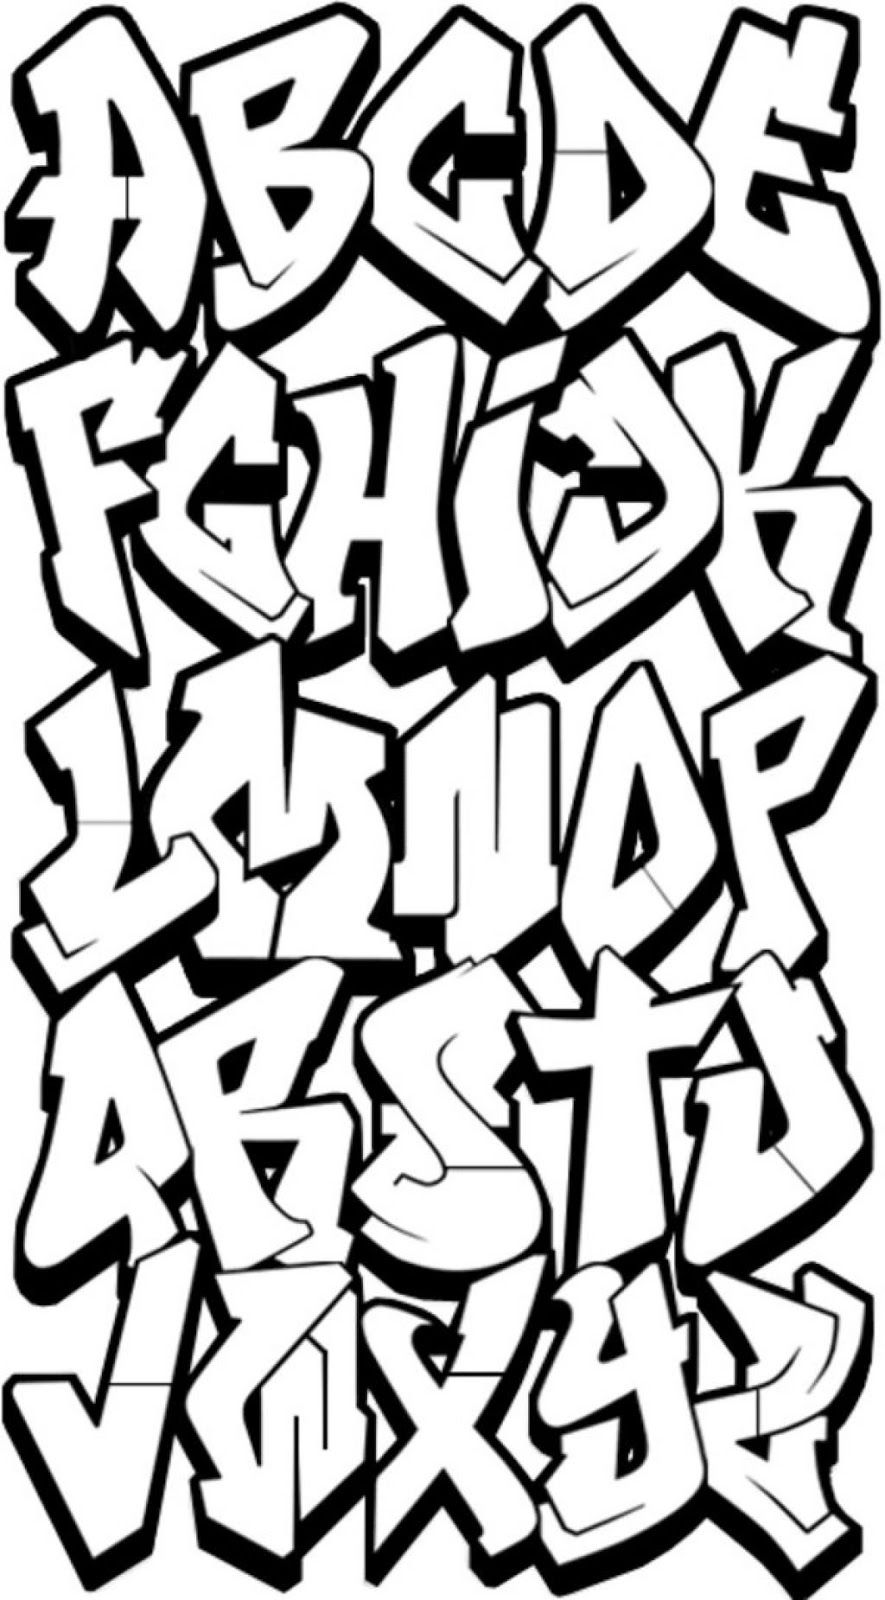 Graffiti Fonts A-Z 3D